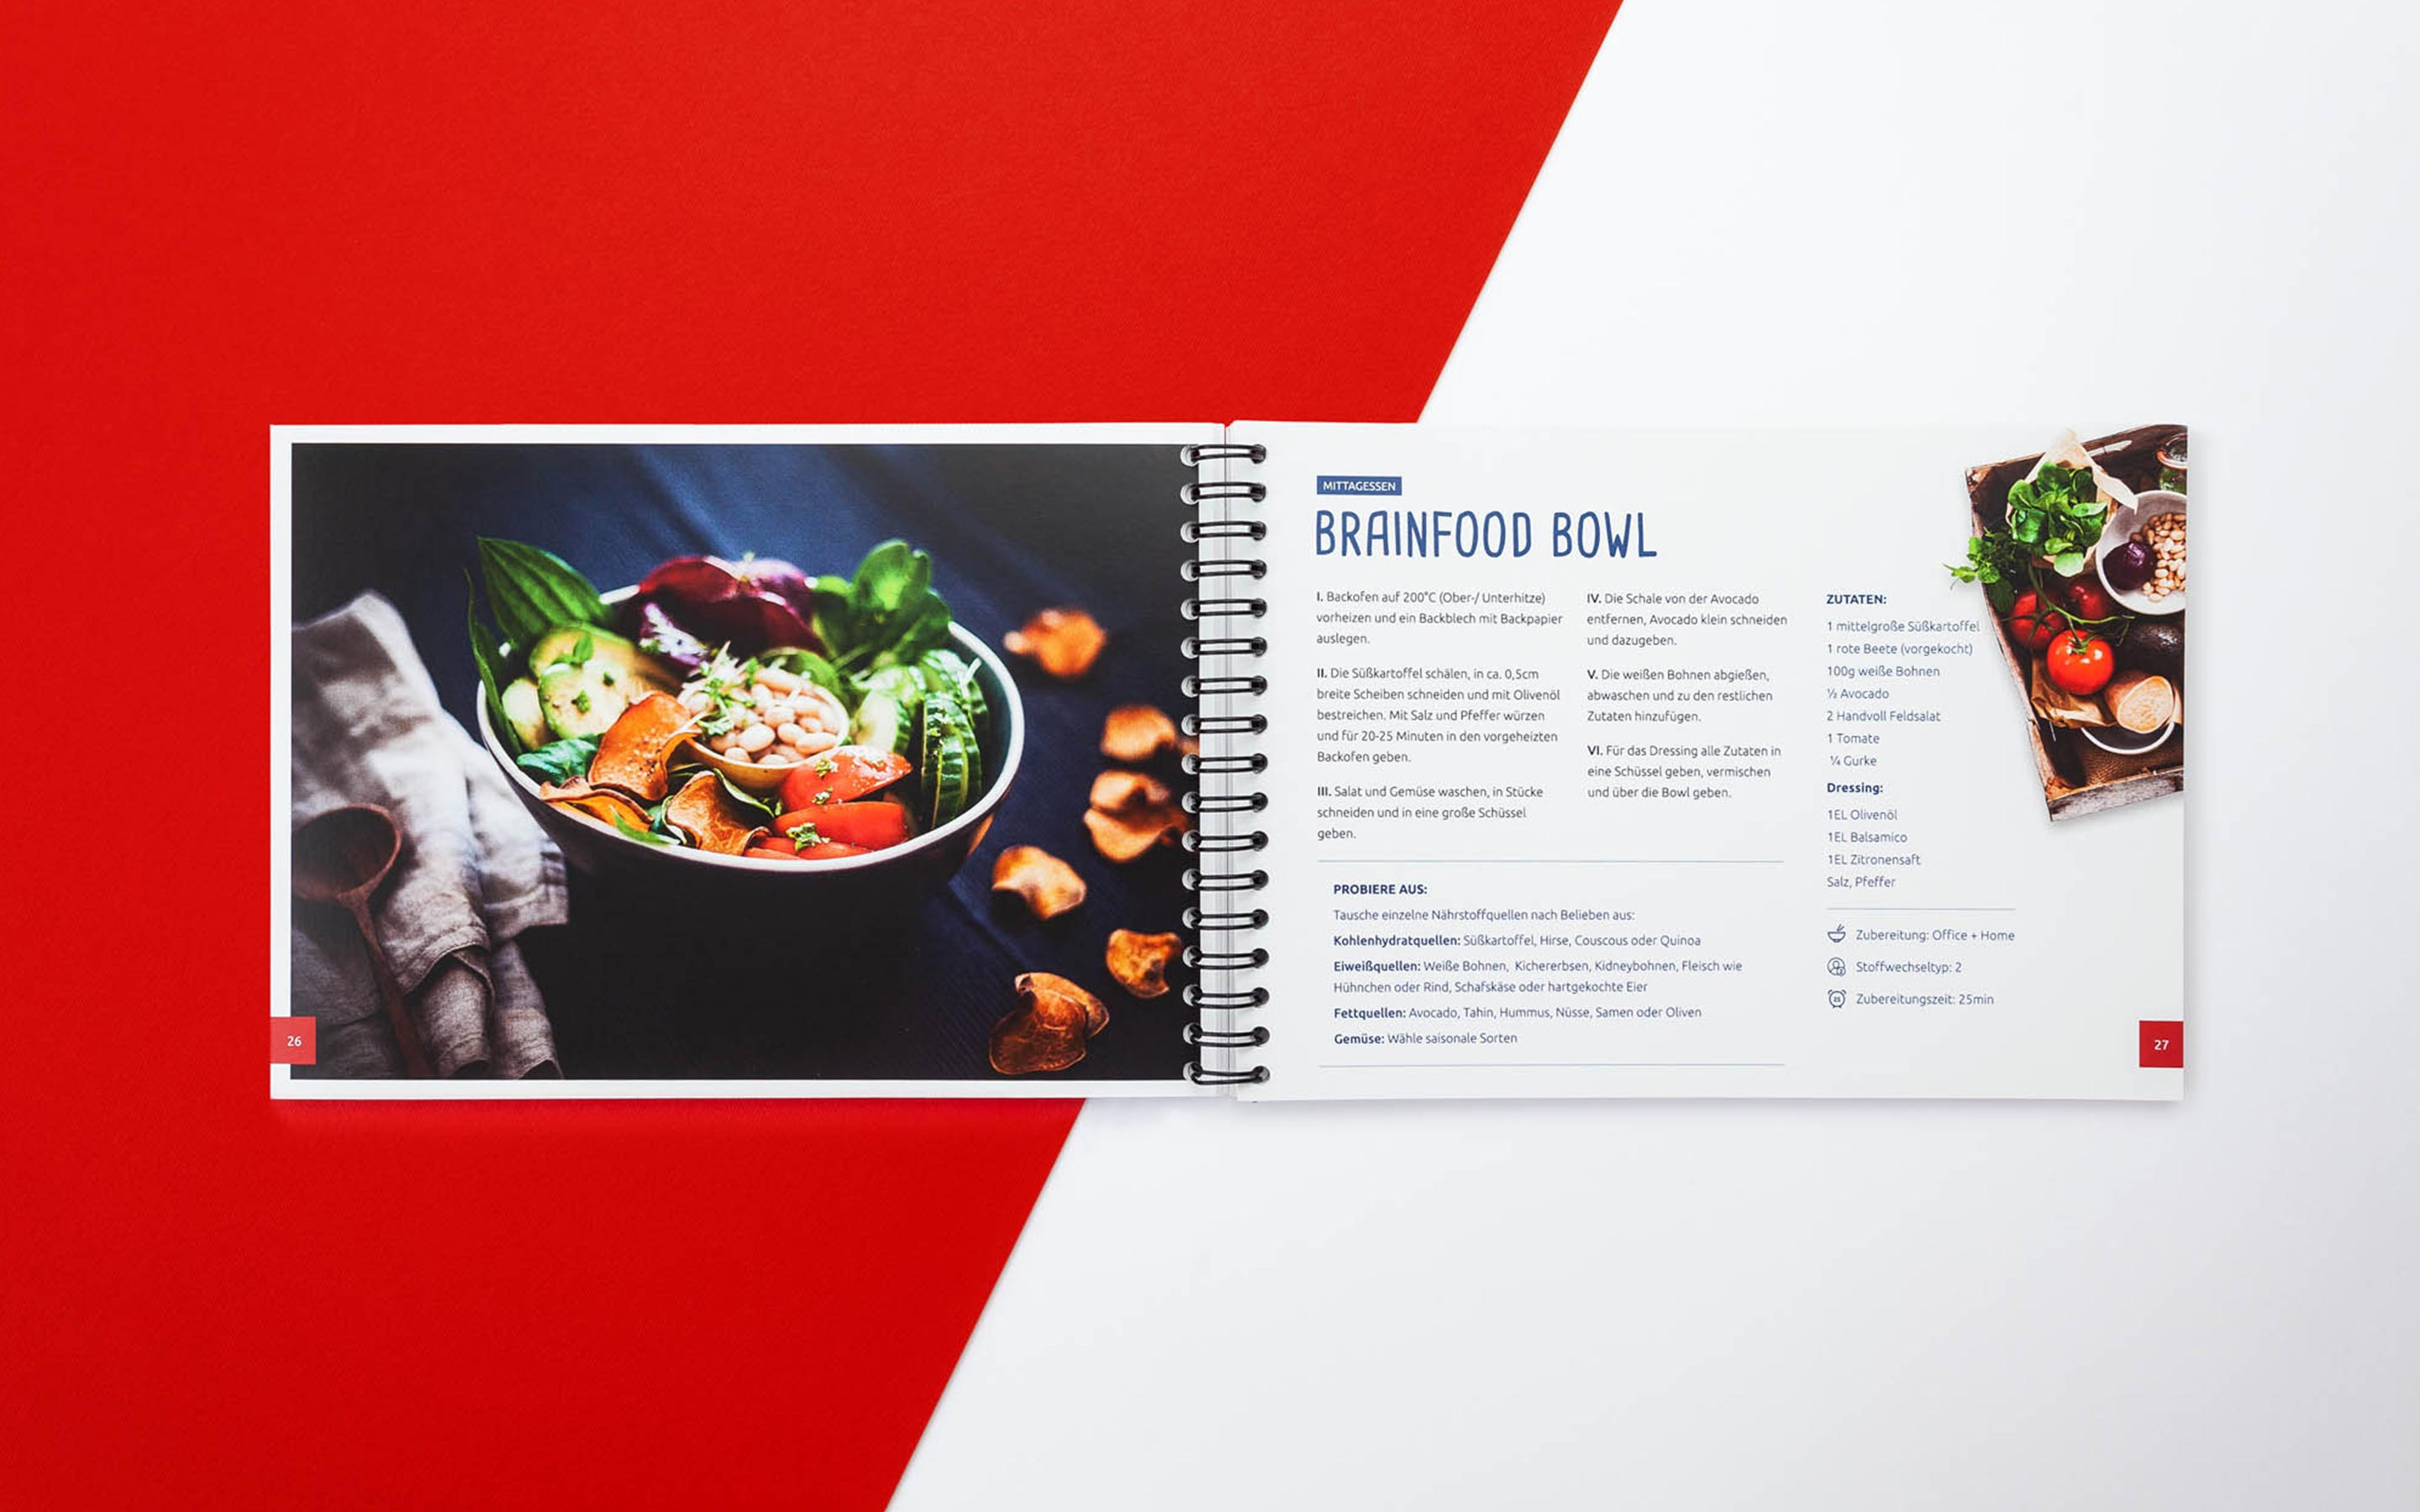 thisis_portfolio_content_movement24_brainfood_guide_02